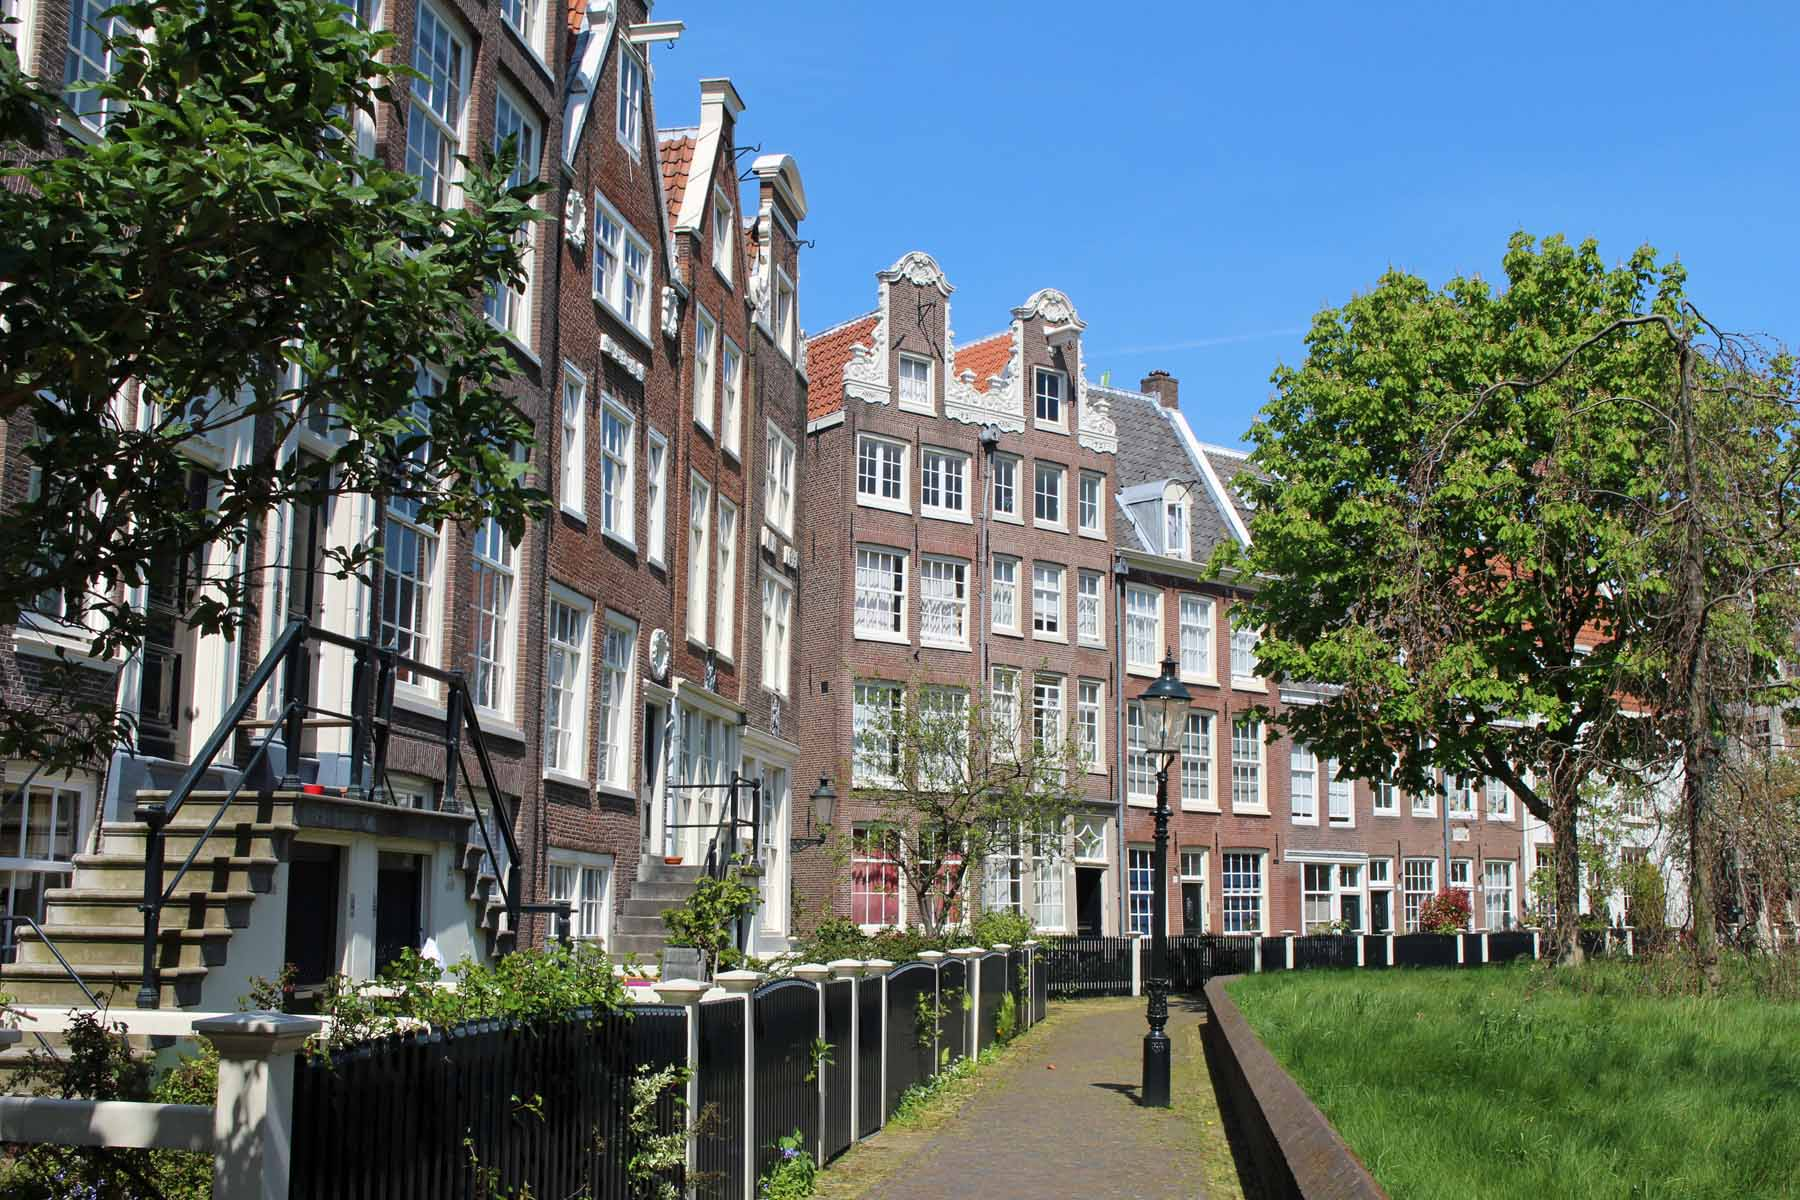 Amsterdam, Beguinage, houses